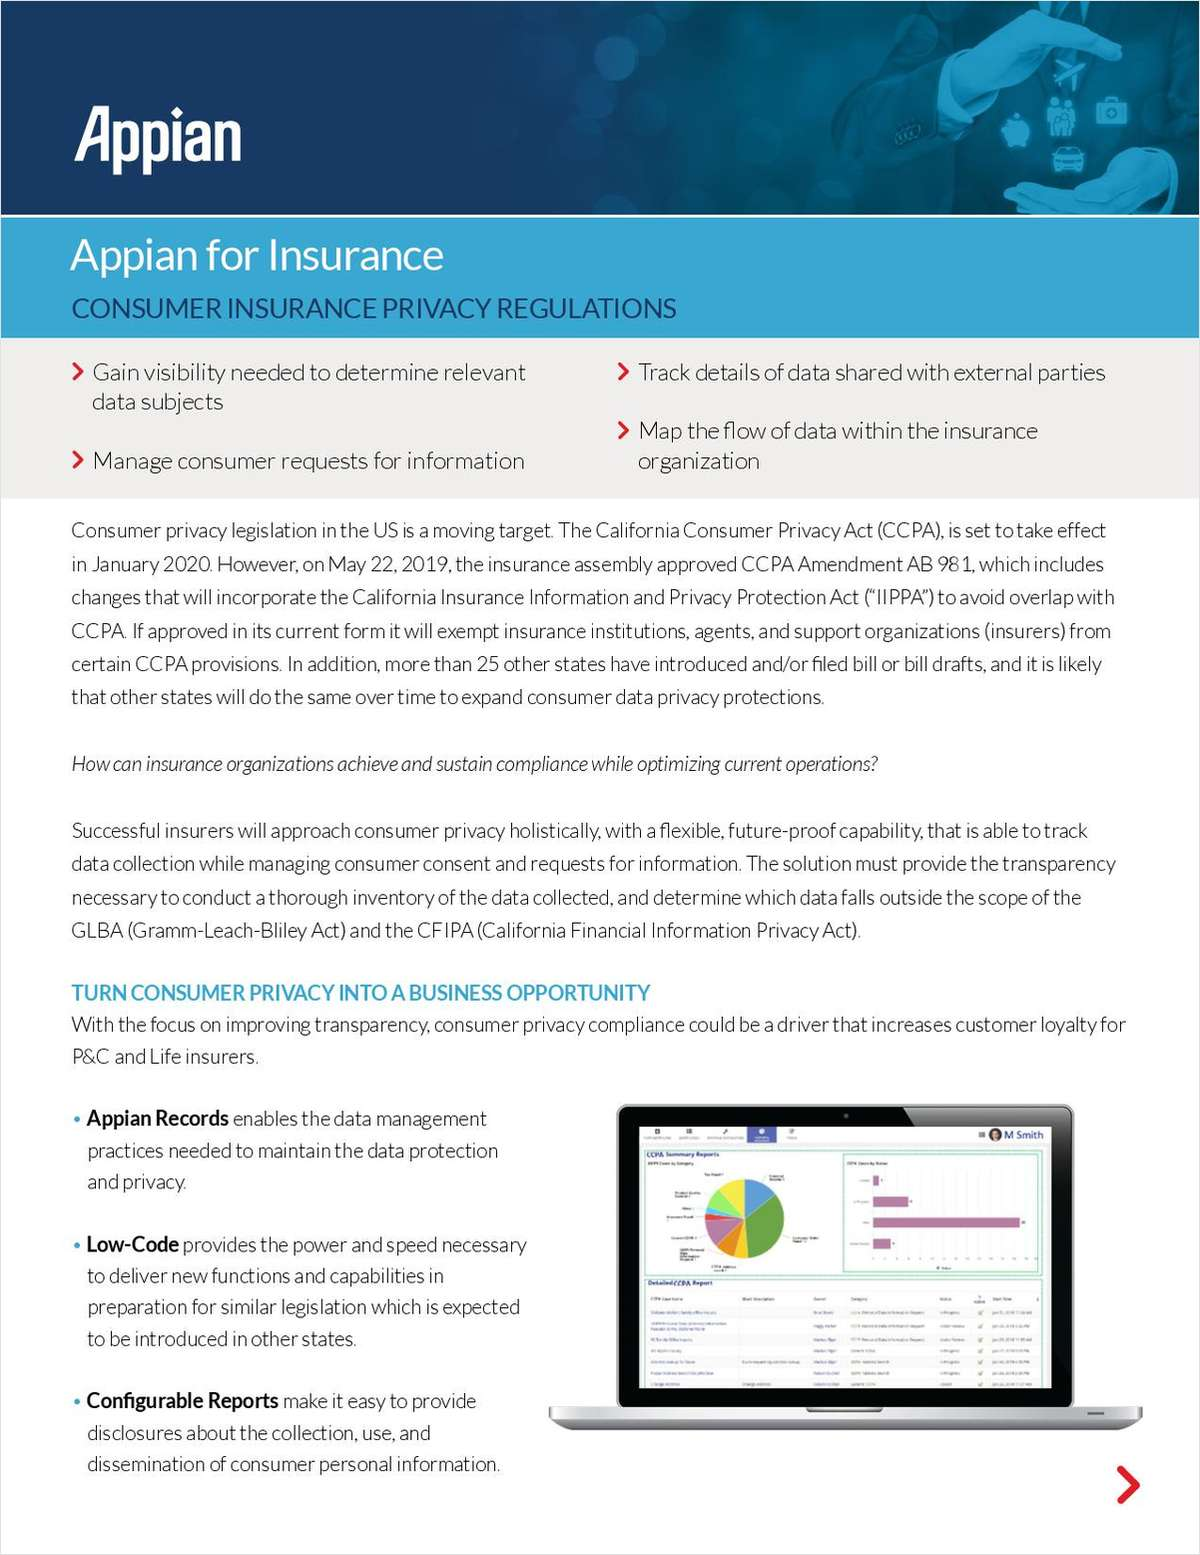 Appian for Insurance: Consumer Insurance Privacy